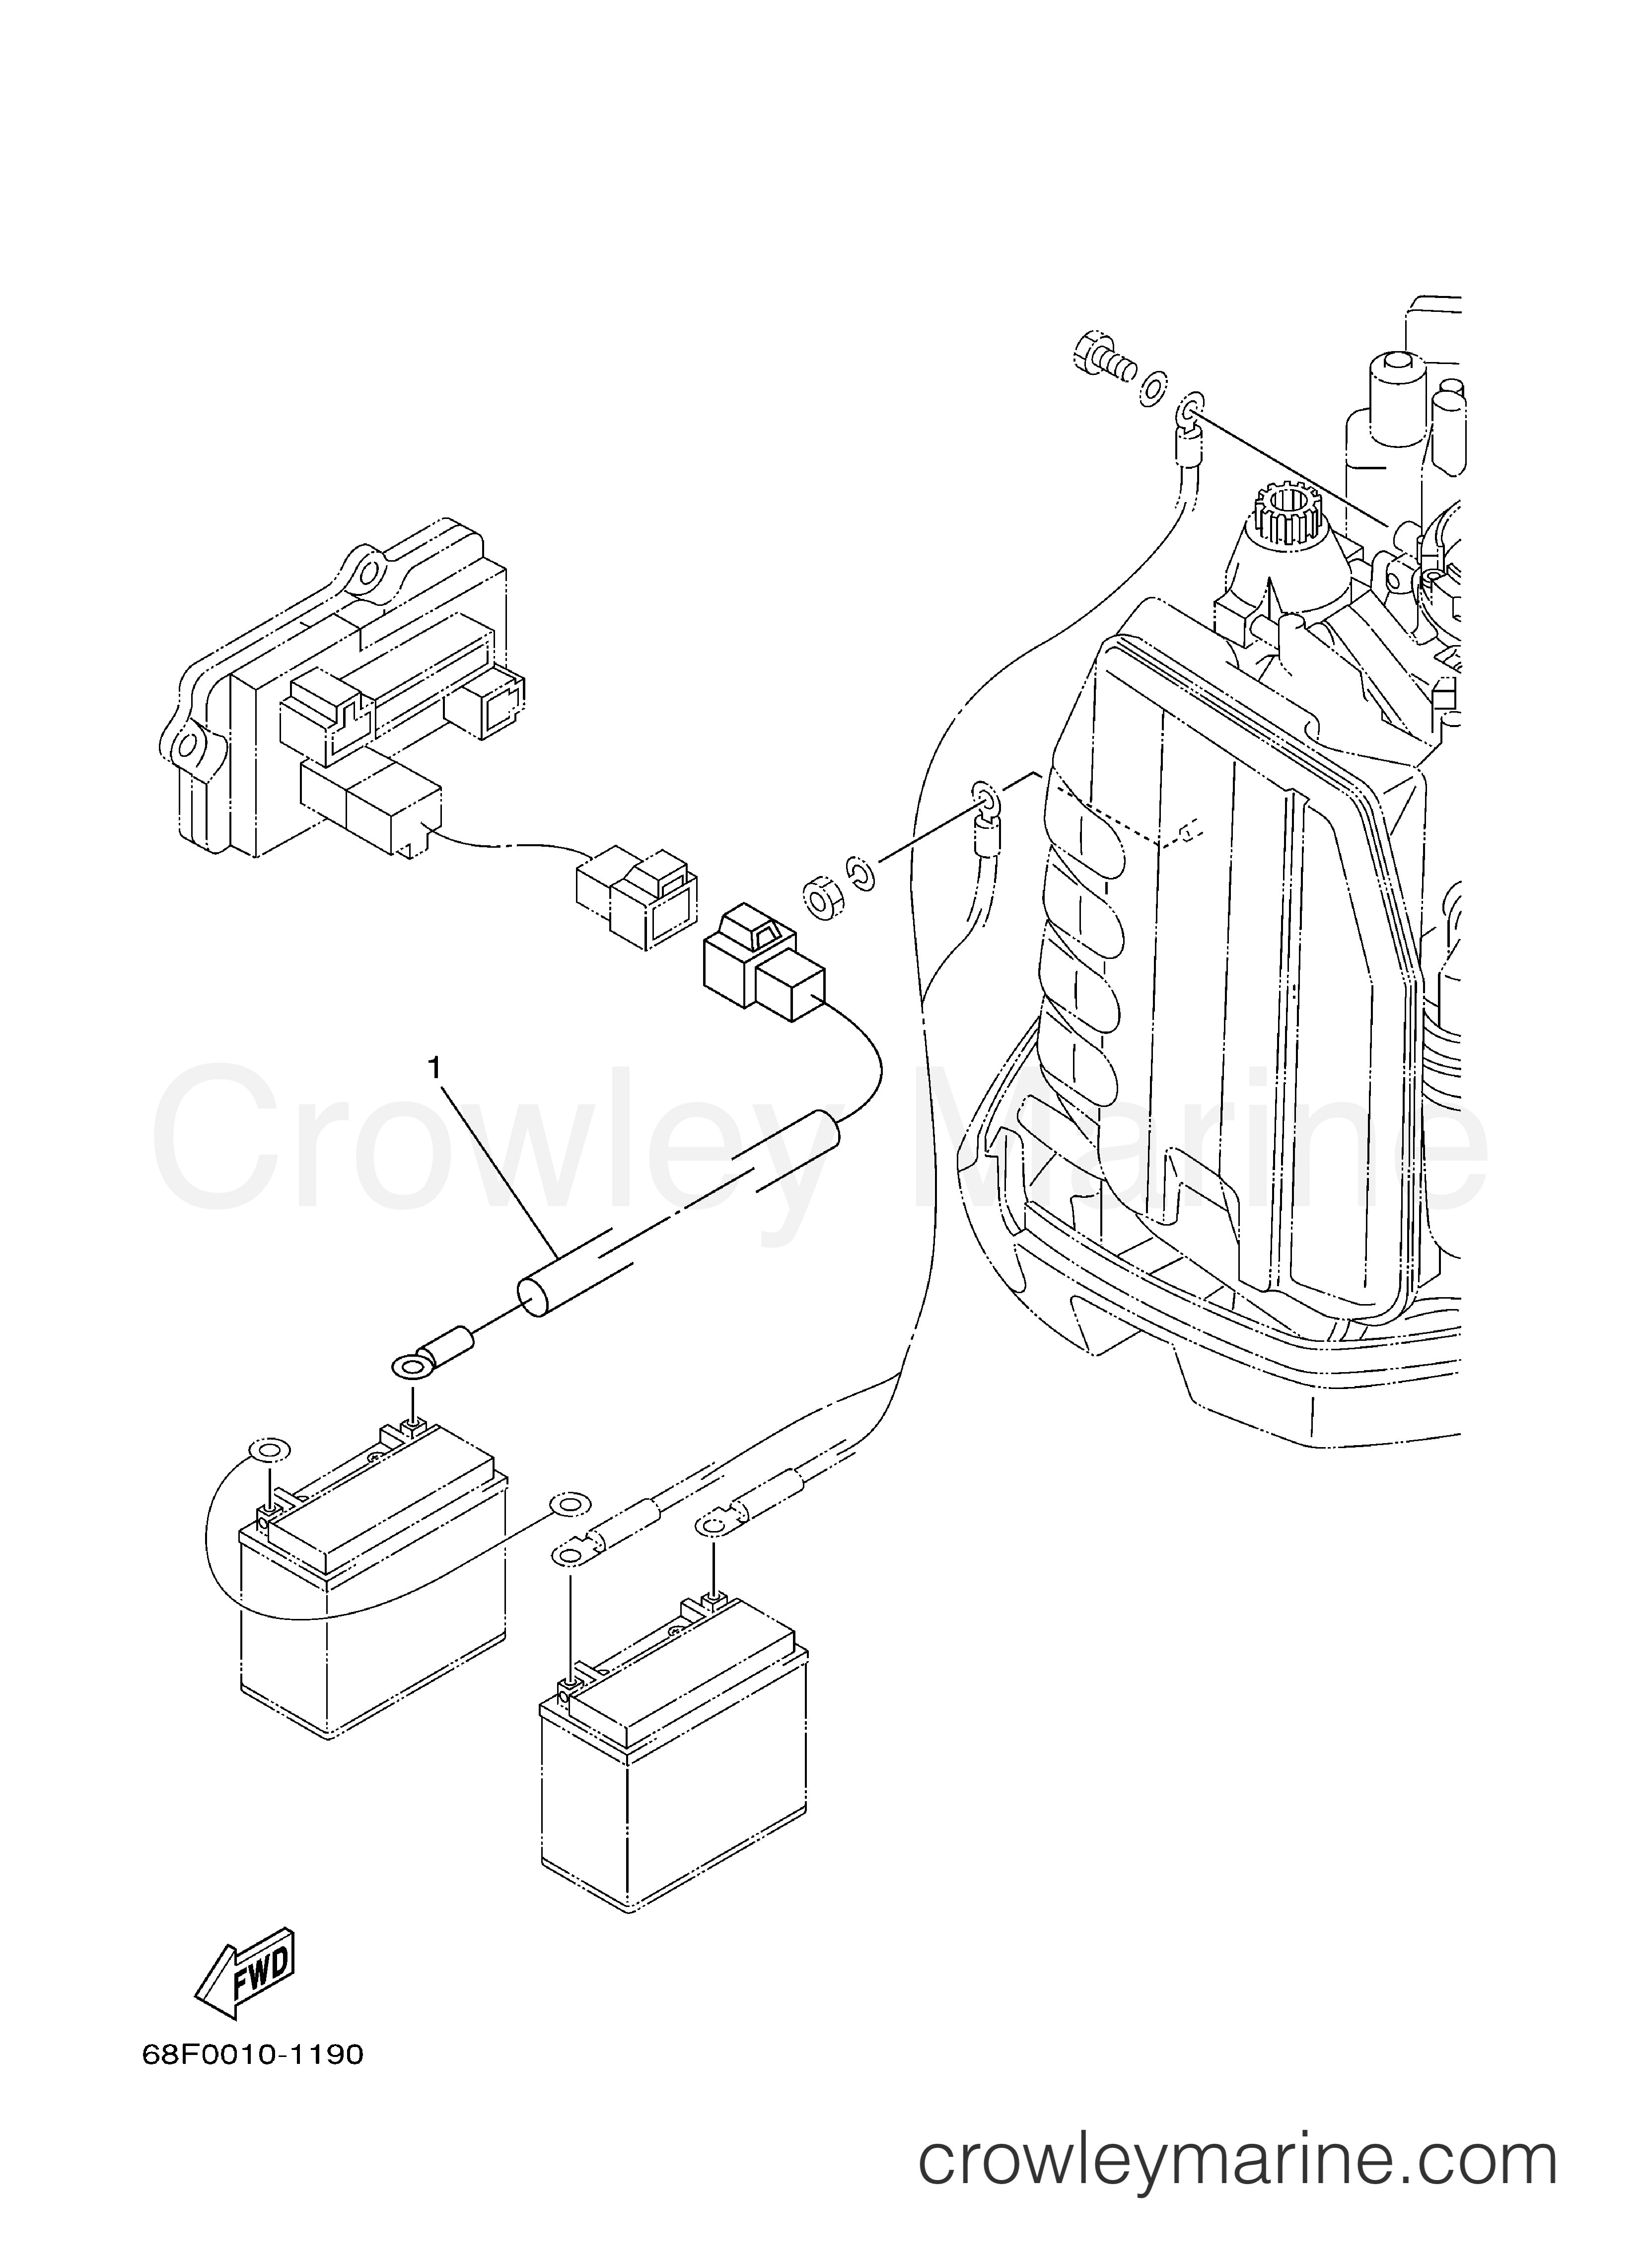 Inboard outboard engine diagram optional parts 1 2001 yamaha outboard 150hp z150txrz of inboard outboard engine